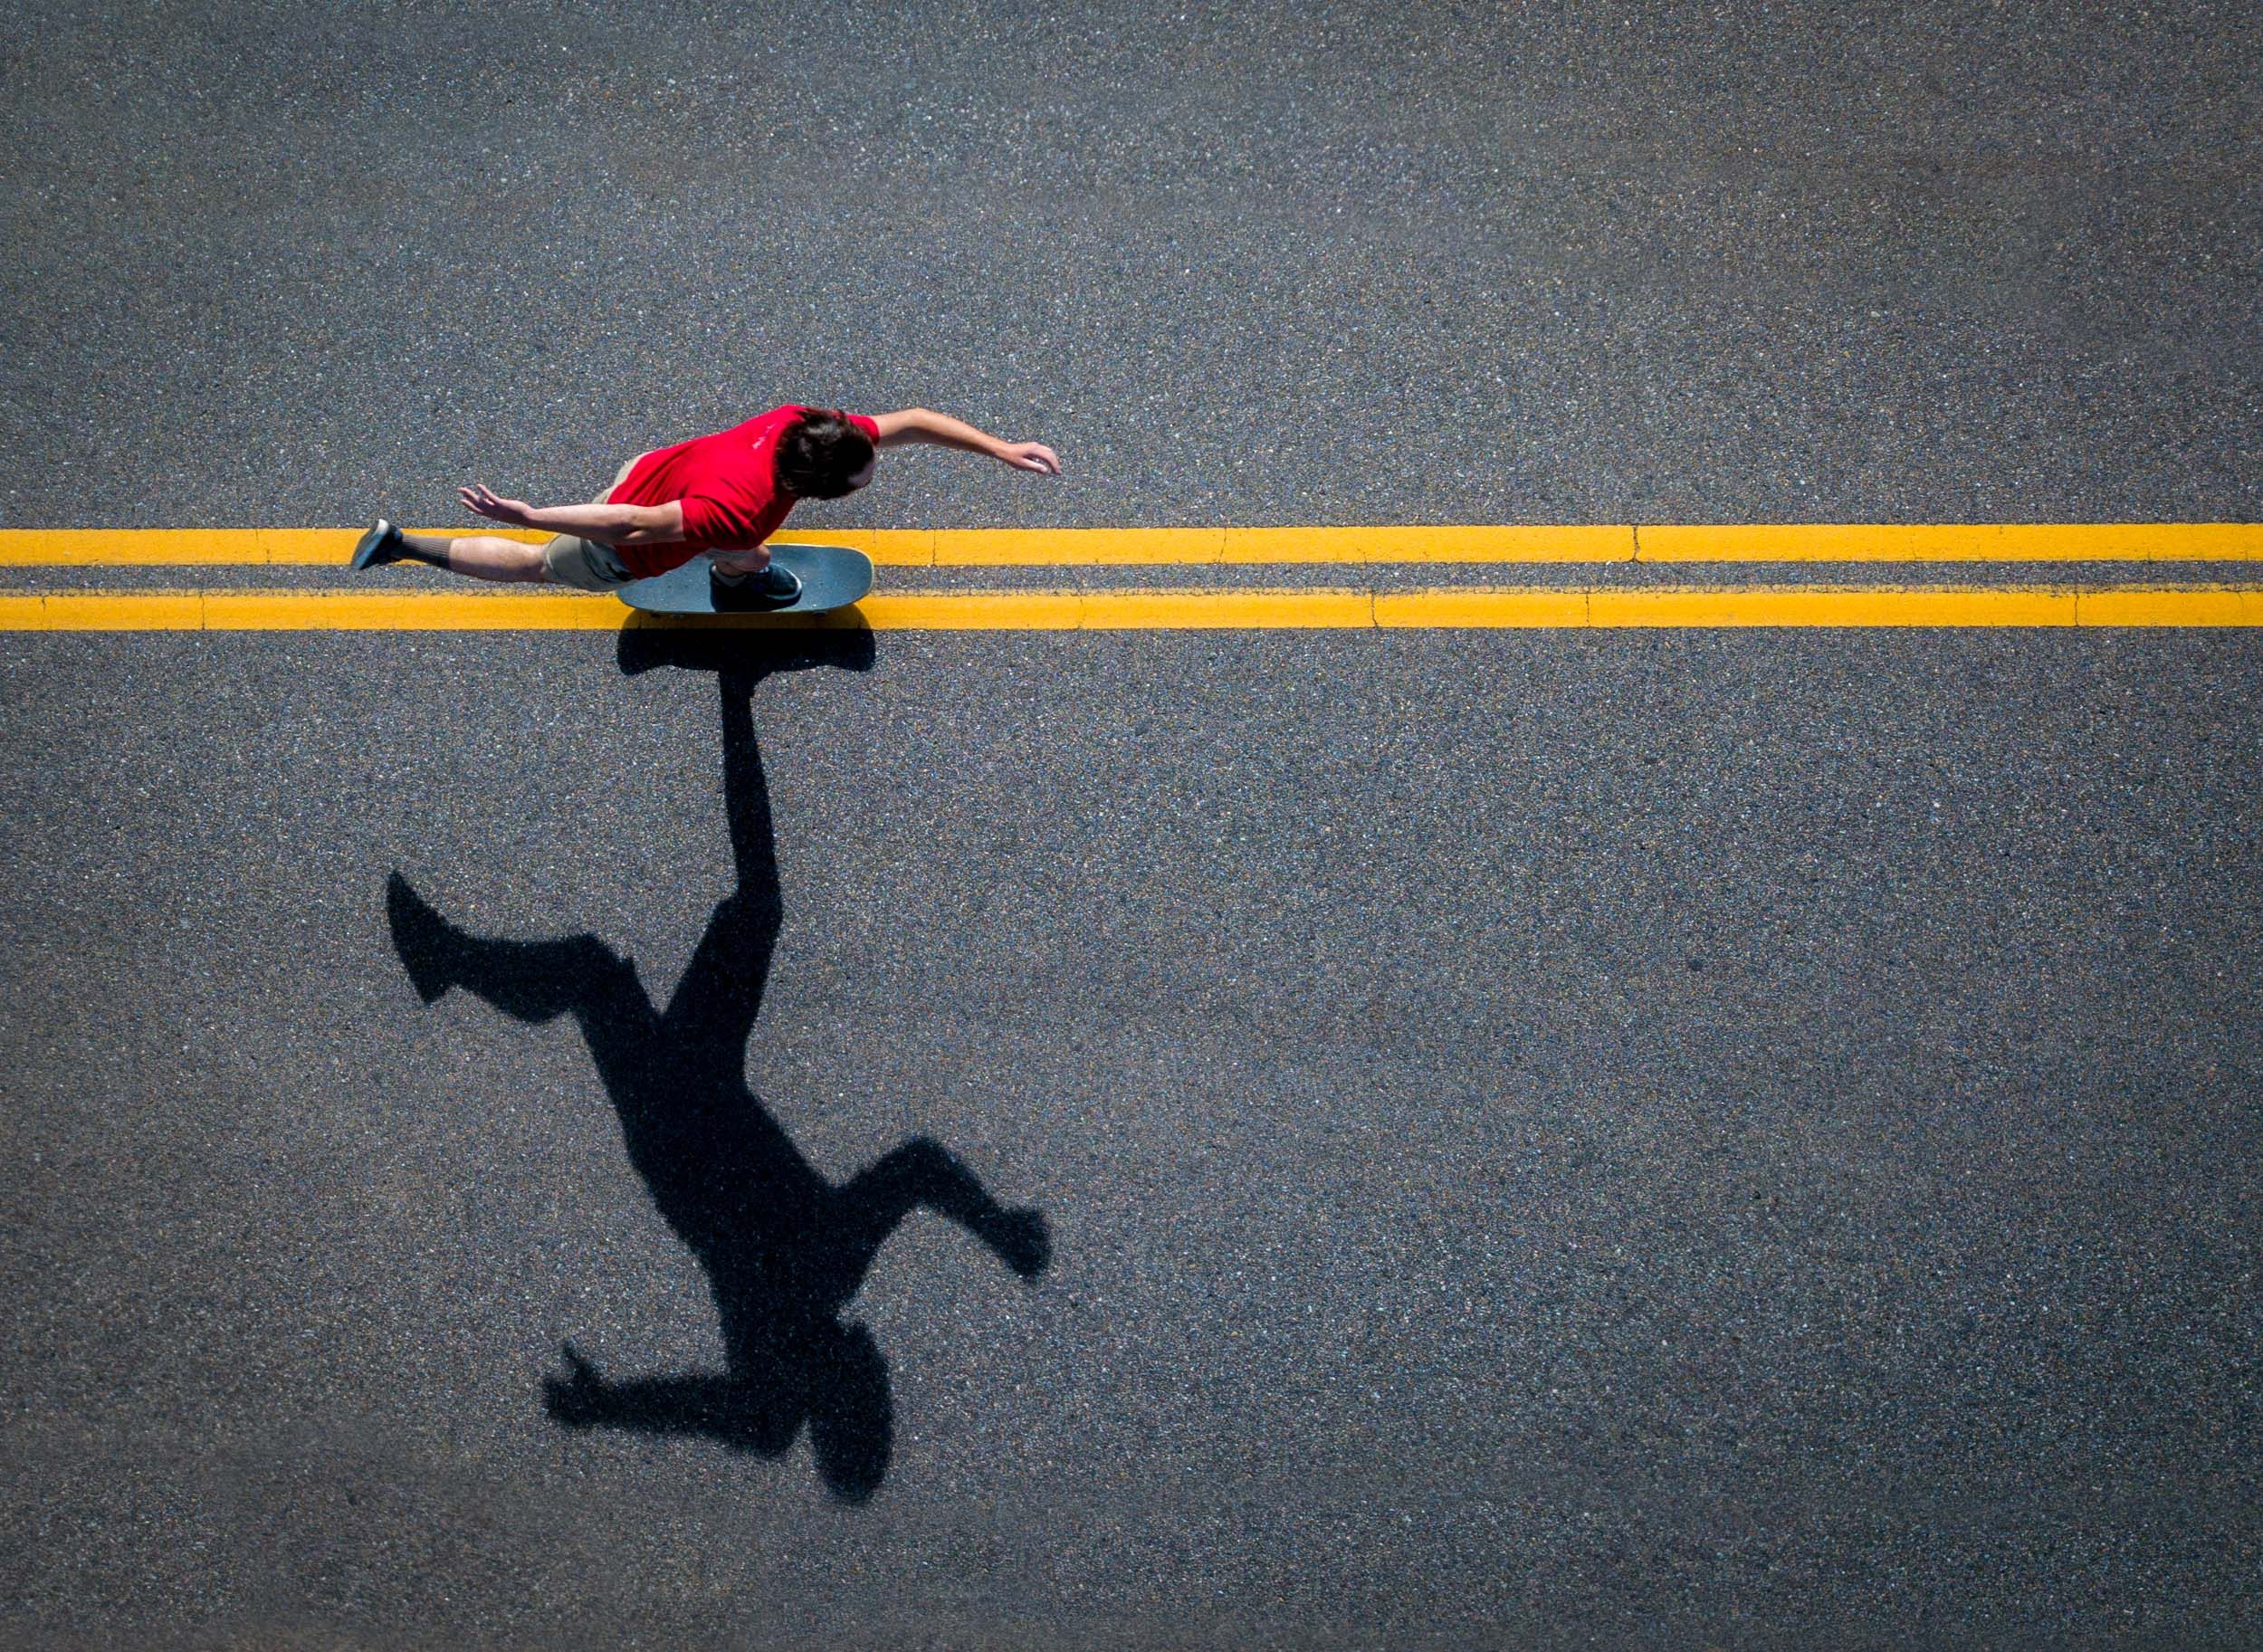 Aerial lifestyle photography of a skateboarder on a road in Boulder, Colorado